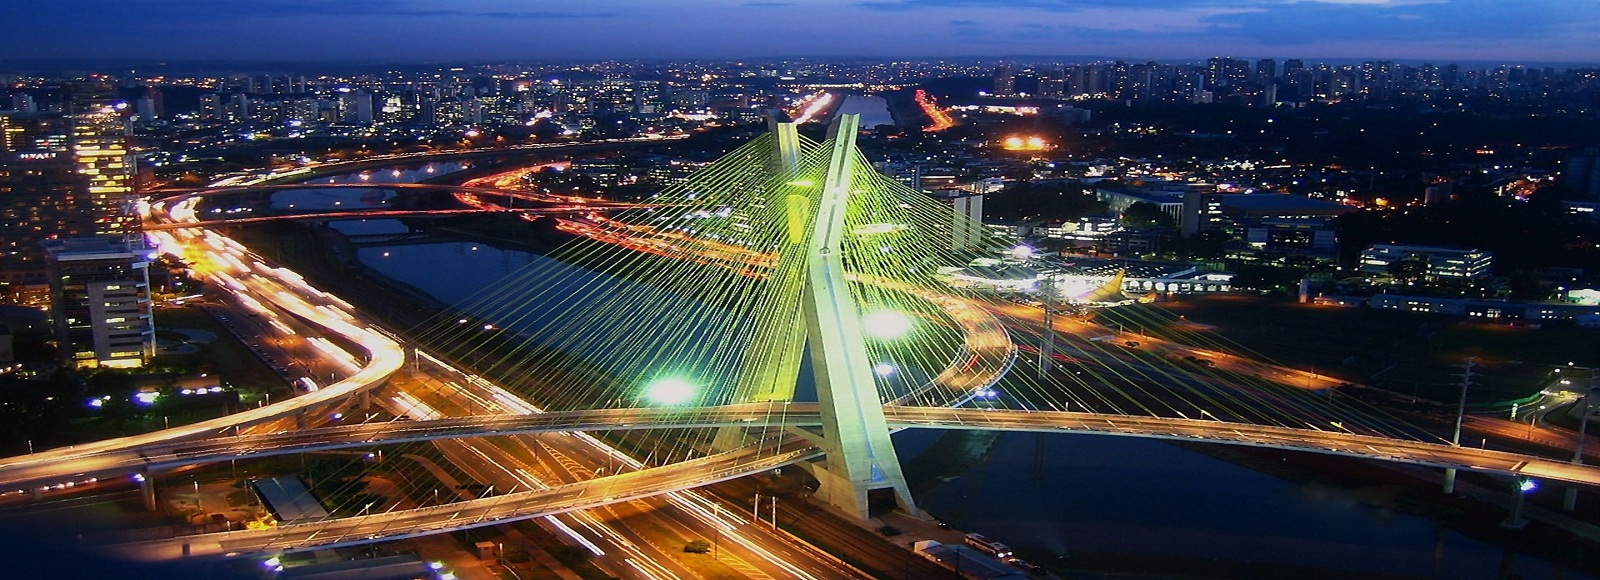 Cheap Flight Fares to Sao Paulo. Flight Tickets Discounts to Sao Paulo